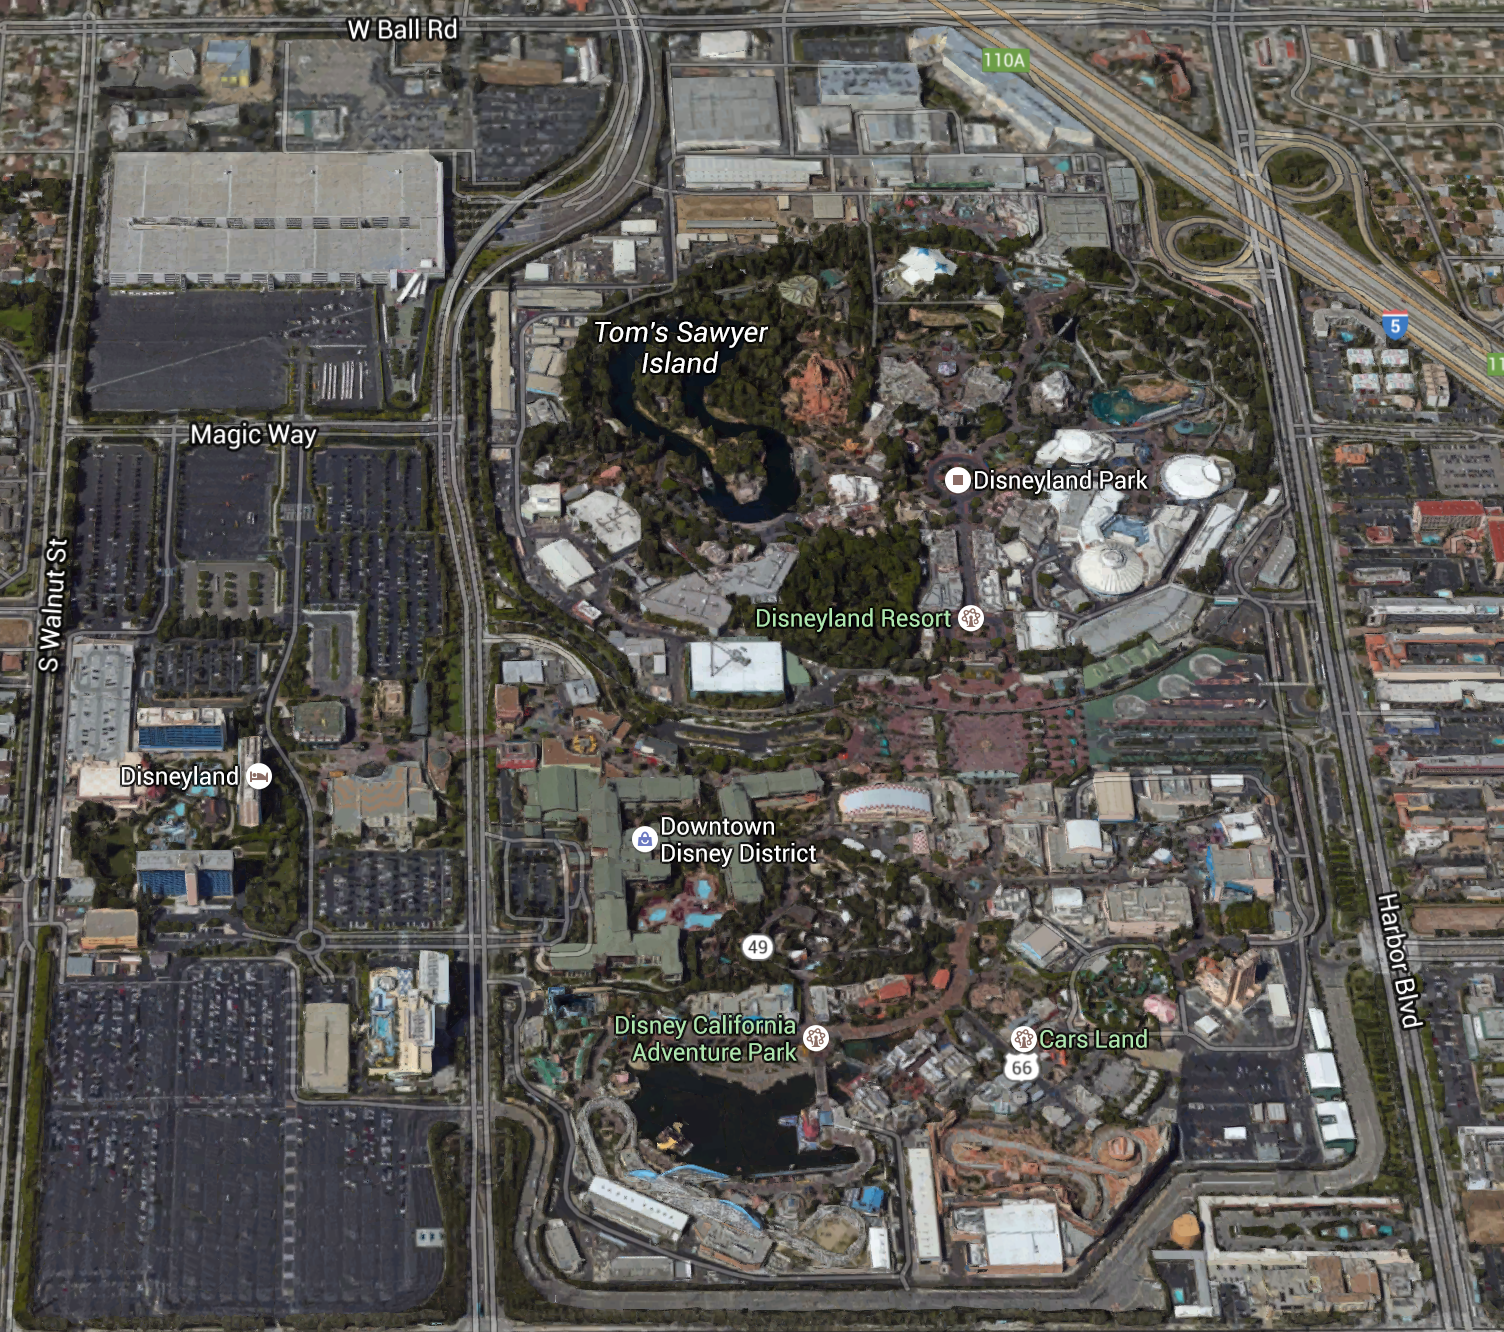 California Map Disney%0A Free Aerial Satellite View   Satellite View of Disneyland Resort and  Surrounding Anaheim California   Panoramic   Pinterest   Anaheim california   Disneyland